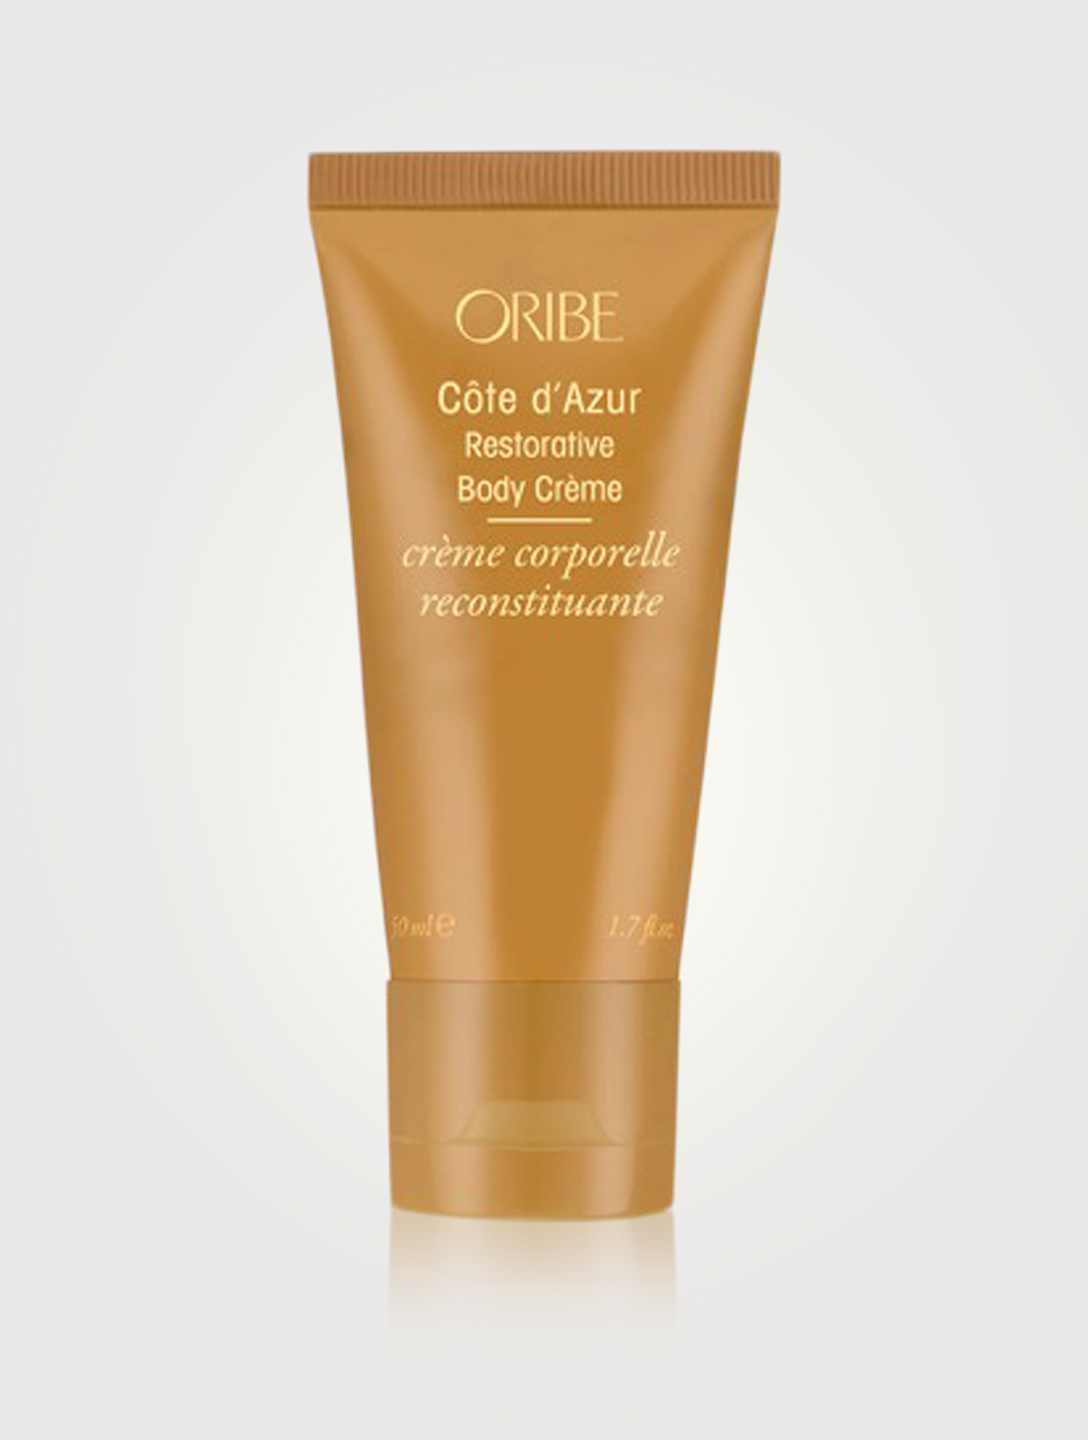 ORIBE Côte d'Azur Restorative Body Cream - Travel Size Beauty